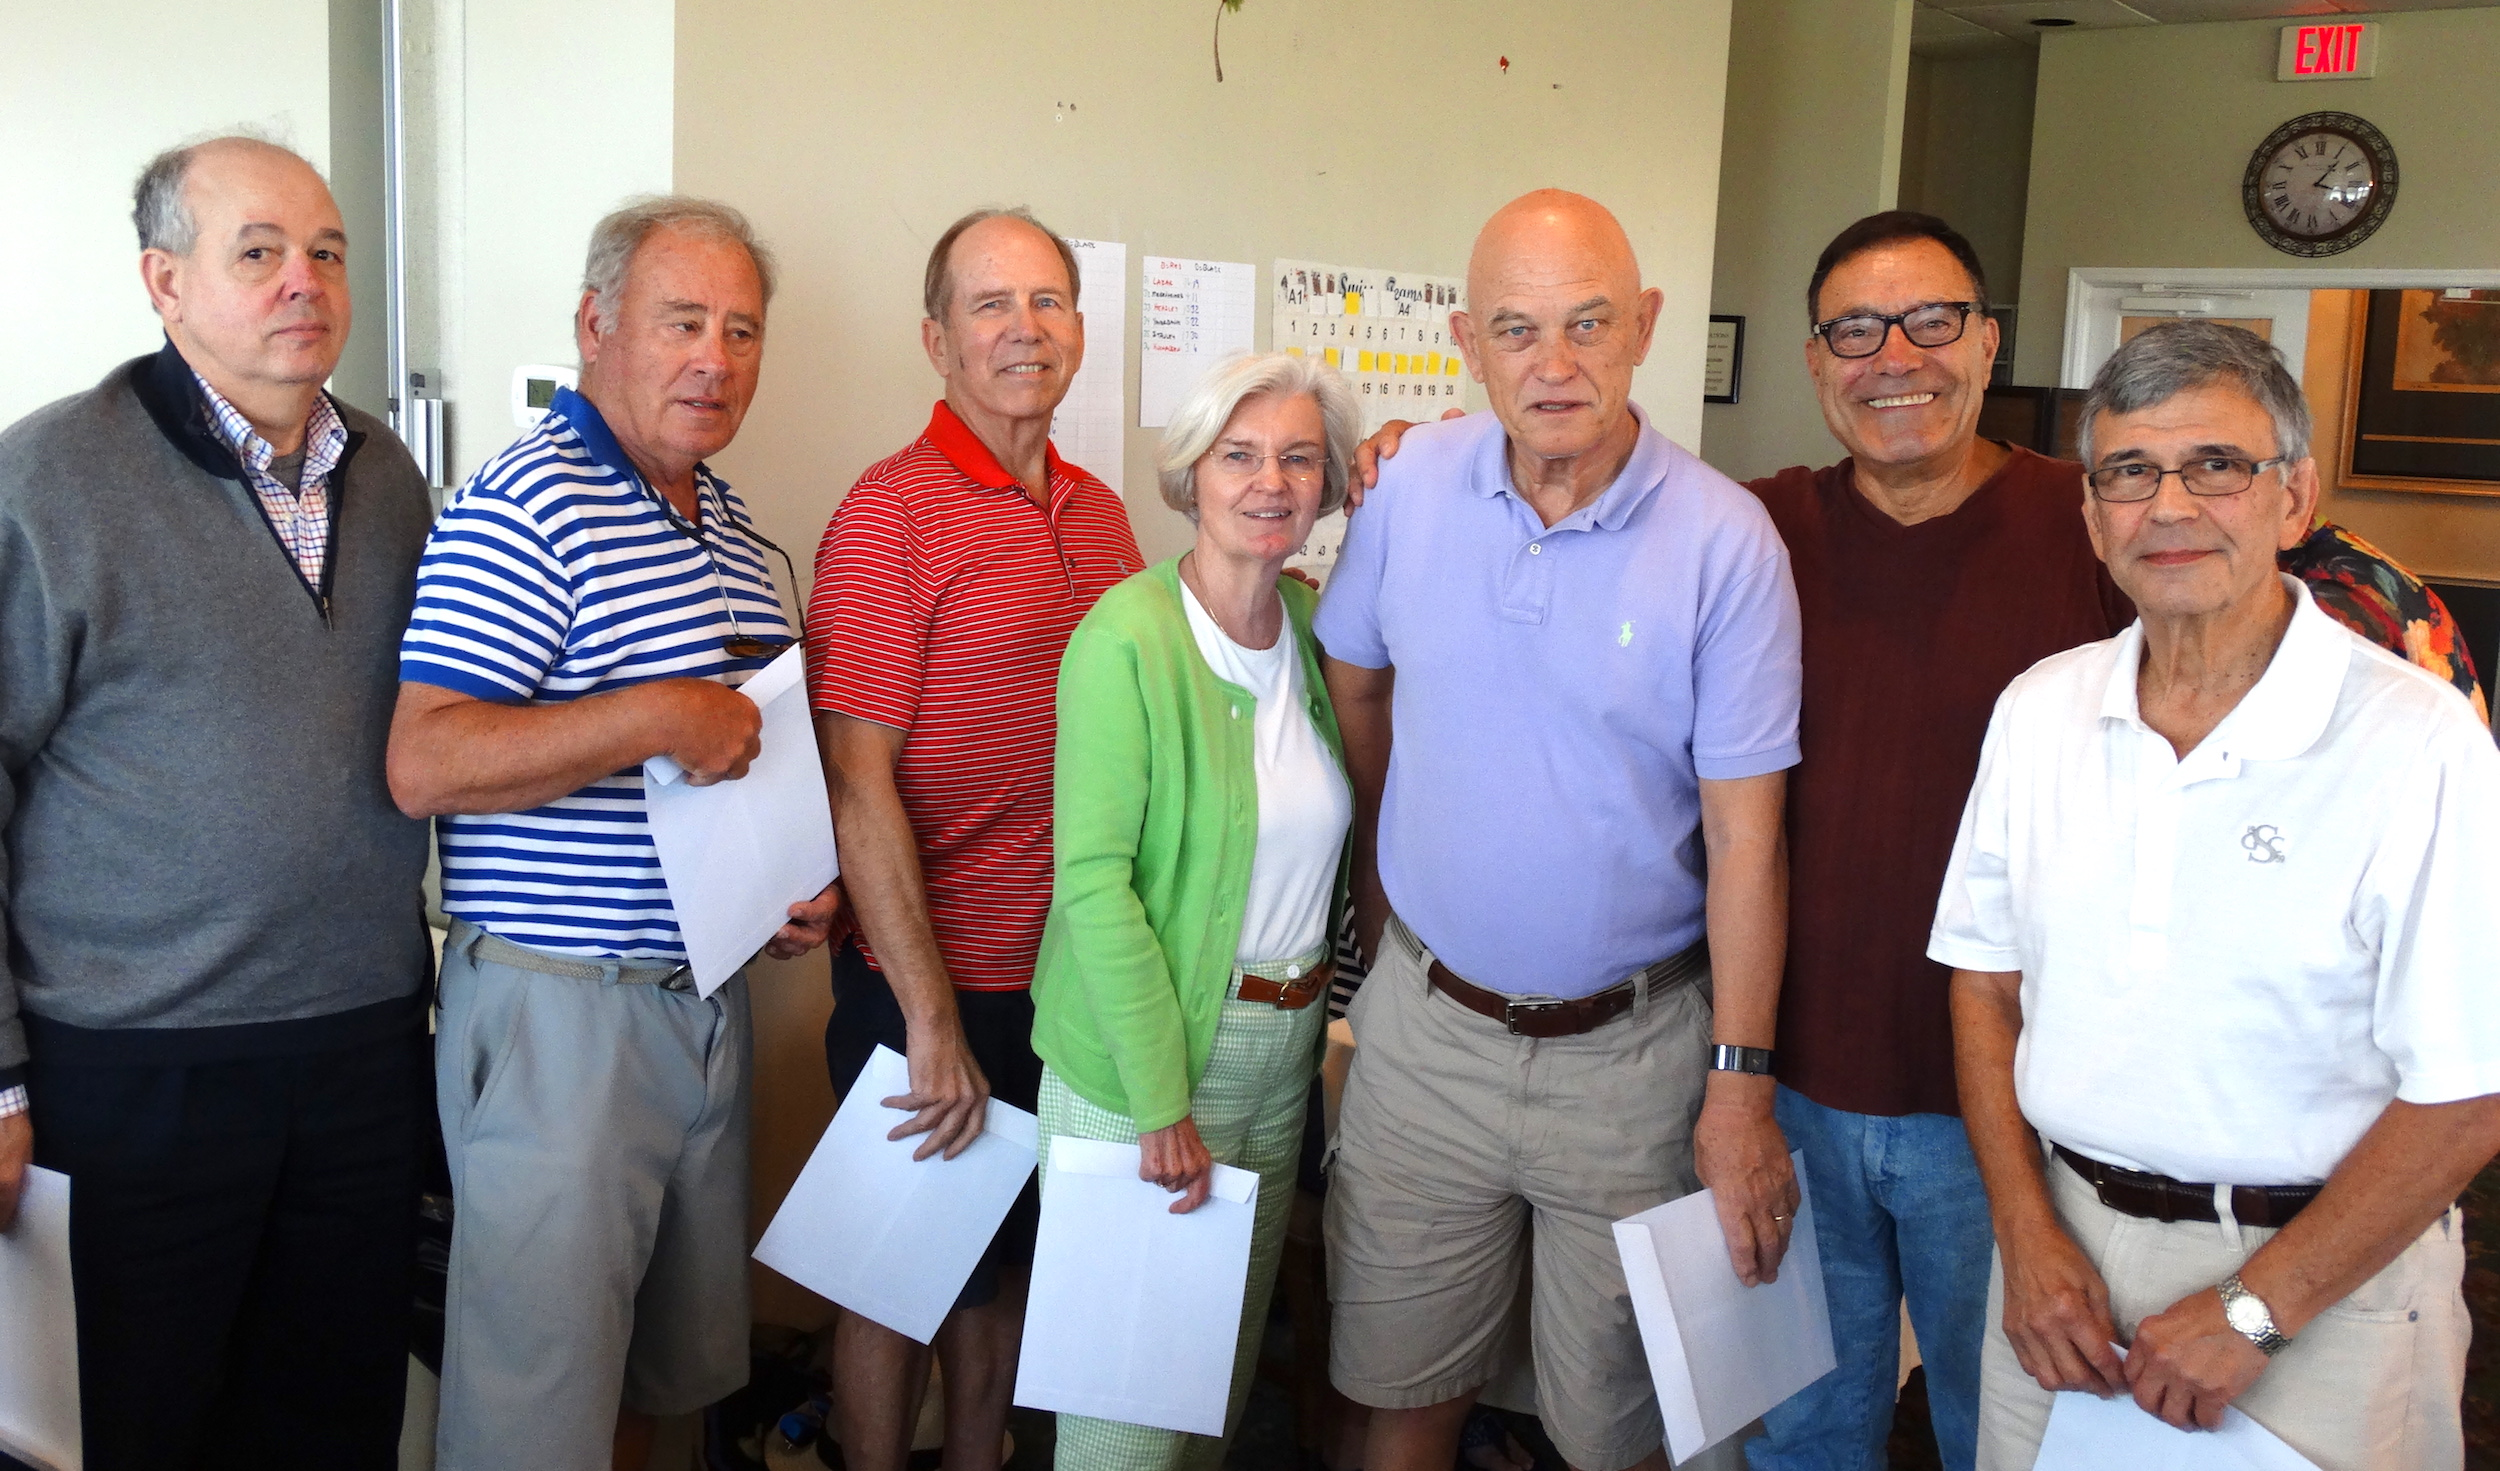 Ace of Clubs Winners - Les Bart, Ed Spear, Mike Gibson, Linda Patton, Vic Lawrence, Bob D'Avanzo, Marvin Greene